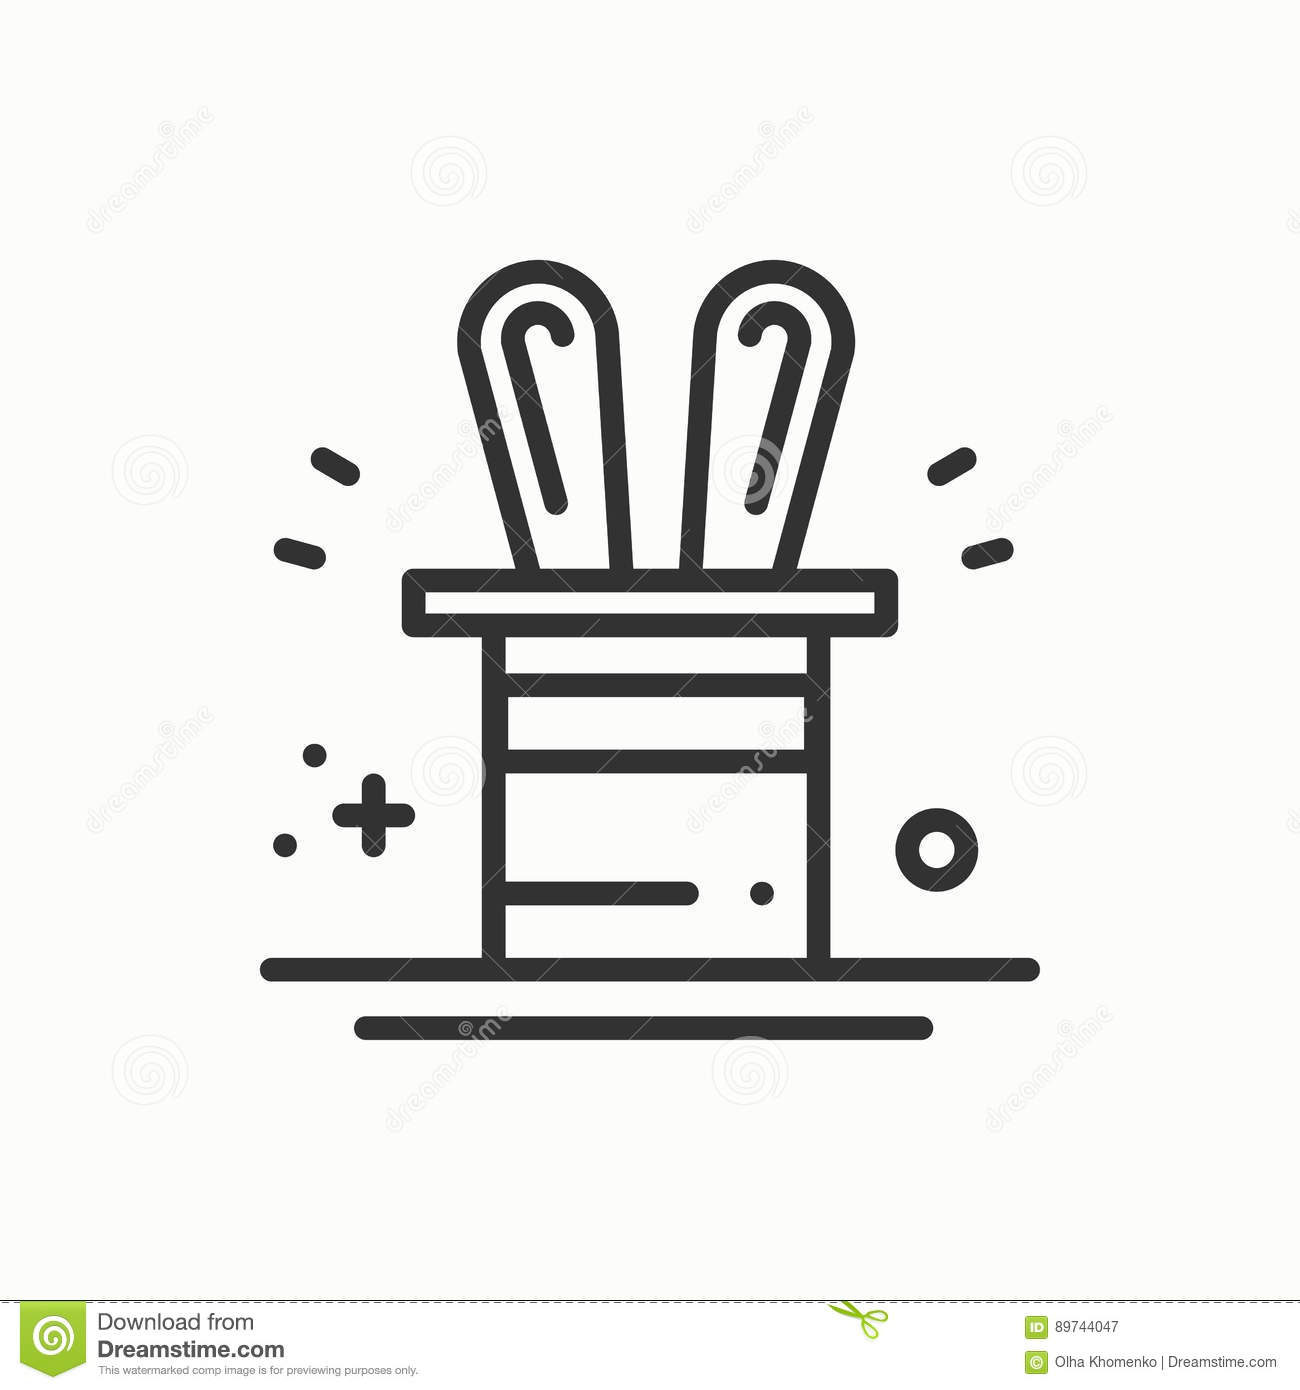 The magic coloring book trick - Magic Trick Icon Rabbit In Magician Black Hat Cylinder Circus Magic Party Birthday Event